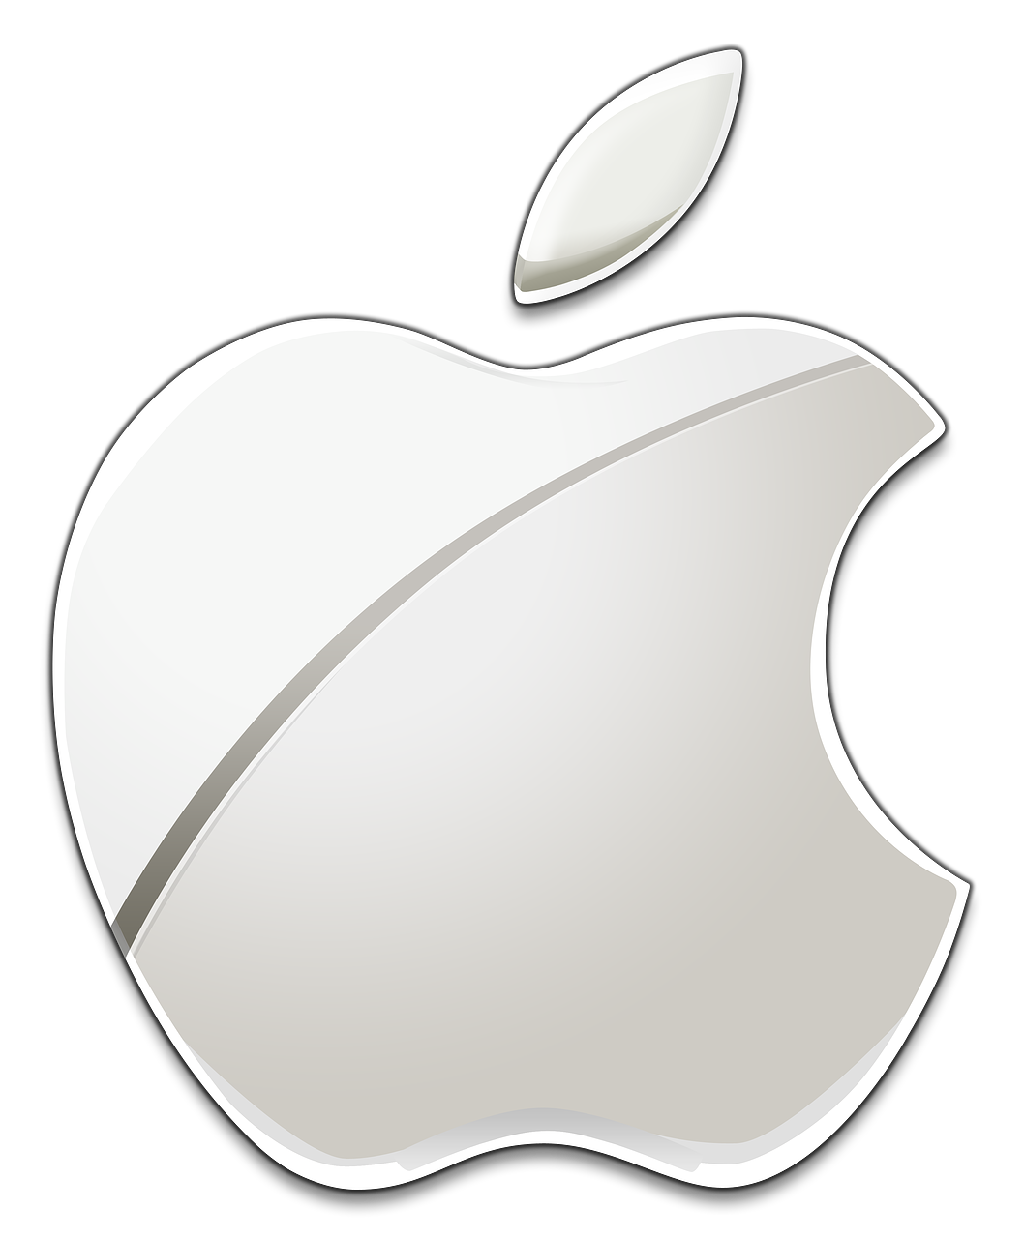 Apple inc clipart black and white png black and white stock Logo Apple Ios PNG Transparent Logo Apple Ios.PNG Images. | PlusPNG png black and white stock